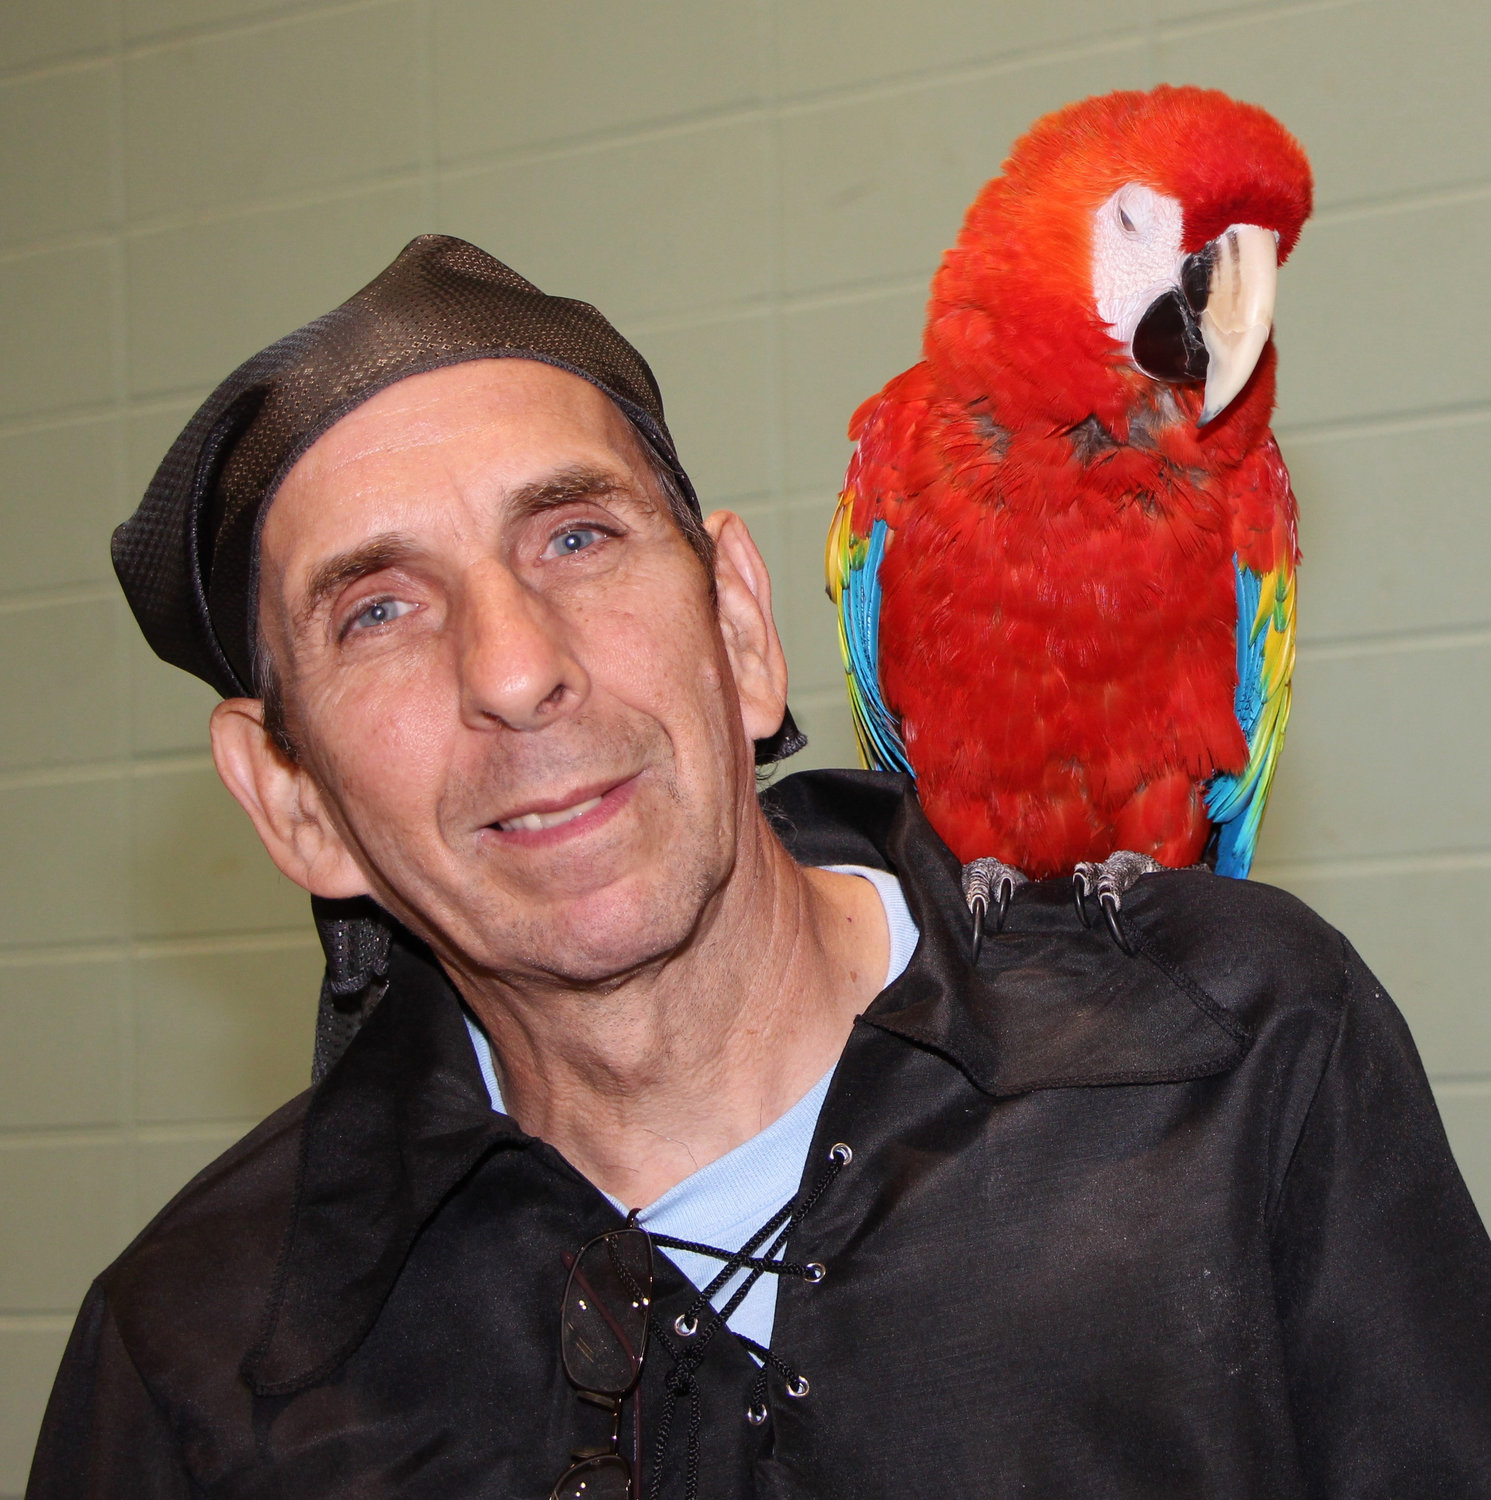 Frank Huwer with one of his many birds, Aries, a scarlet macaw.